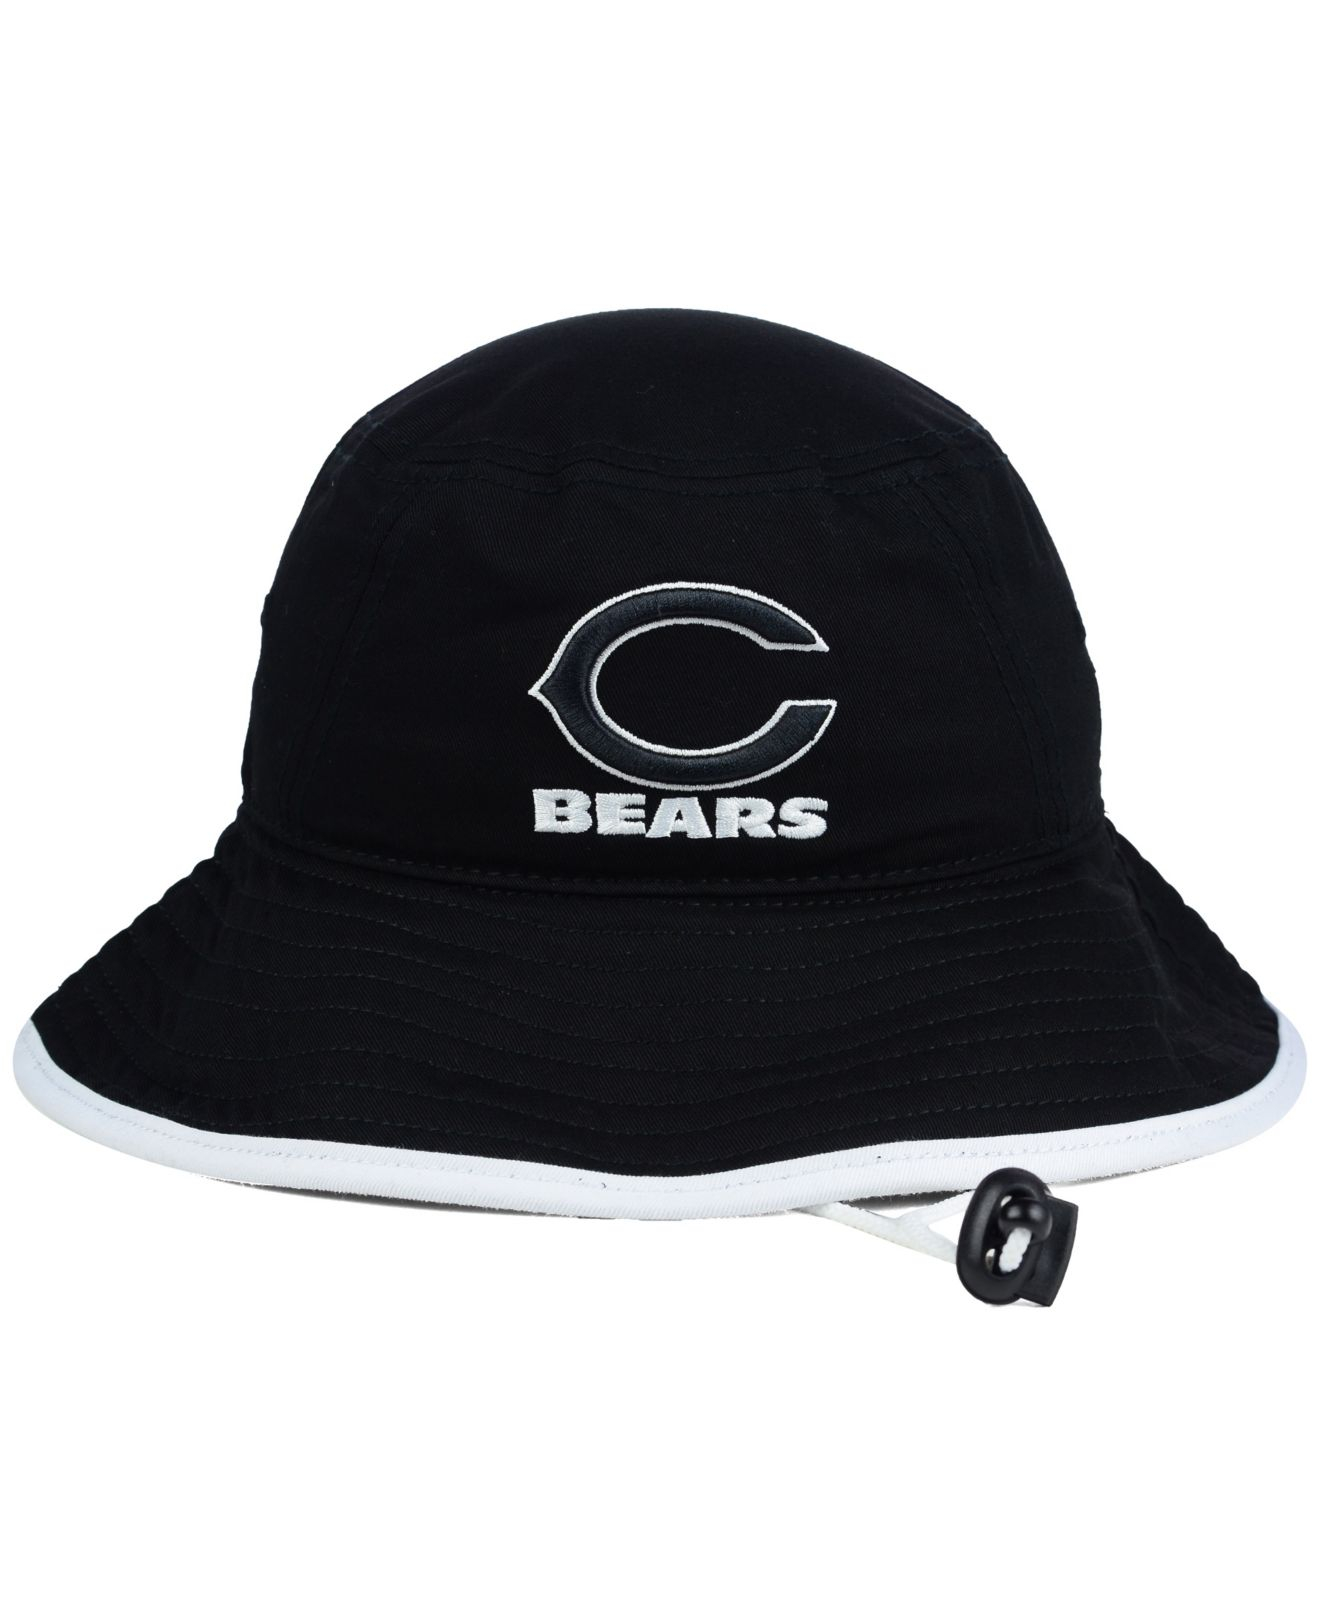 f56bbf19a94 ... coupon code for lyst ktz chicago bears nfl black white bucket hat in  black 1e035 a503b